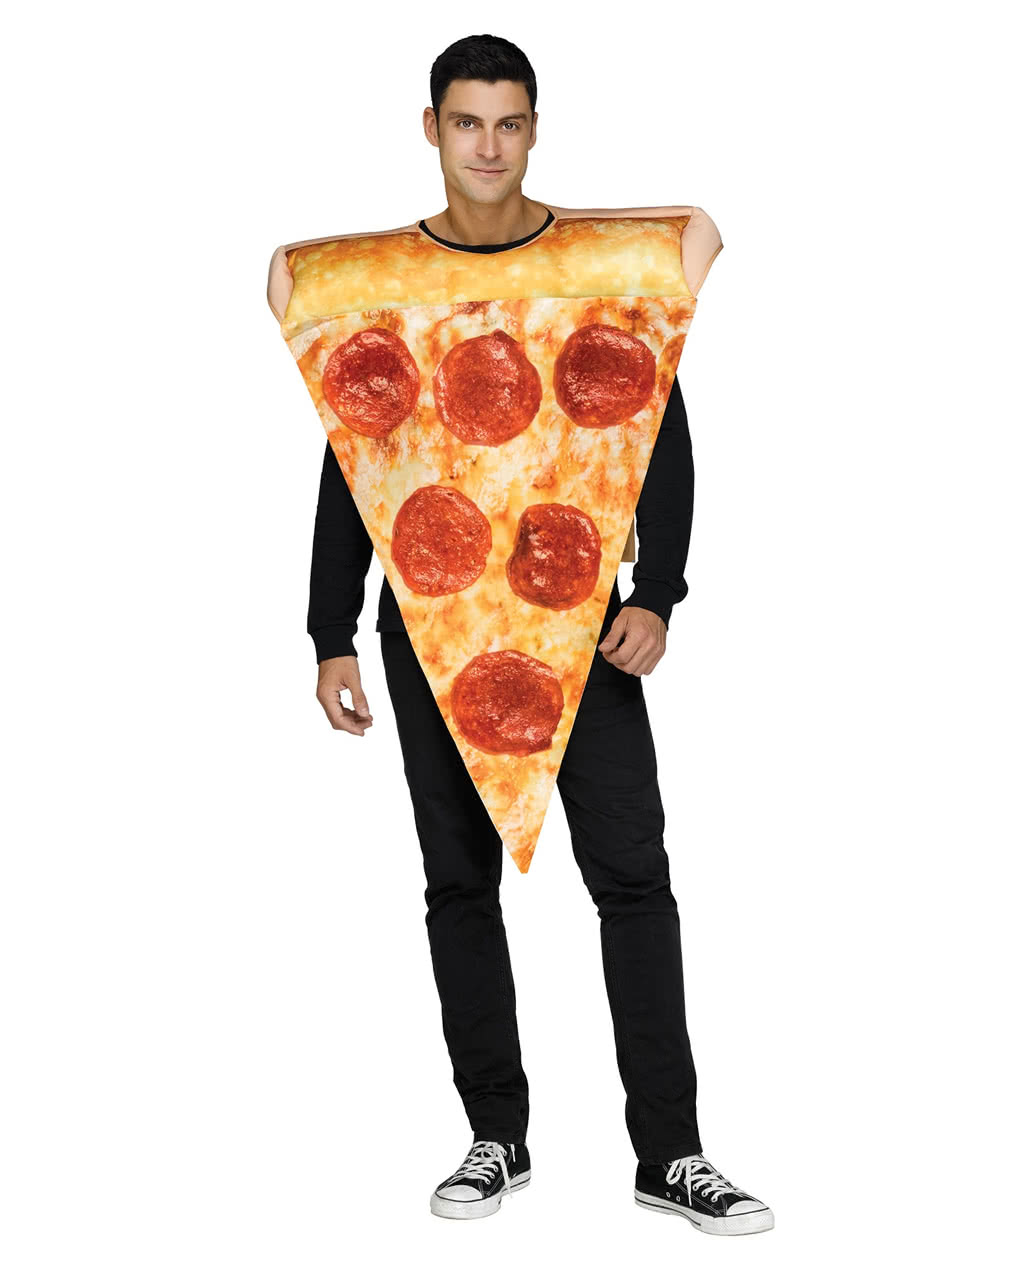 Unisex Pizza Costume ...  sc 1 st  Horror-Shop.com & Unisex Pizza Costume For carnival | horror-shop.com